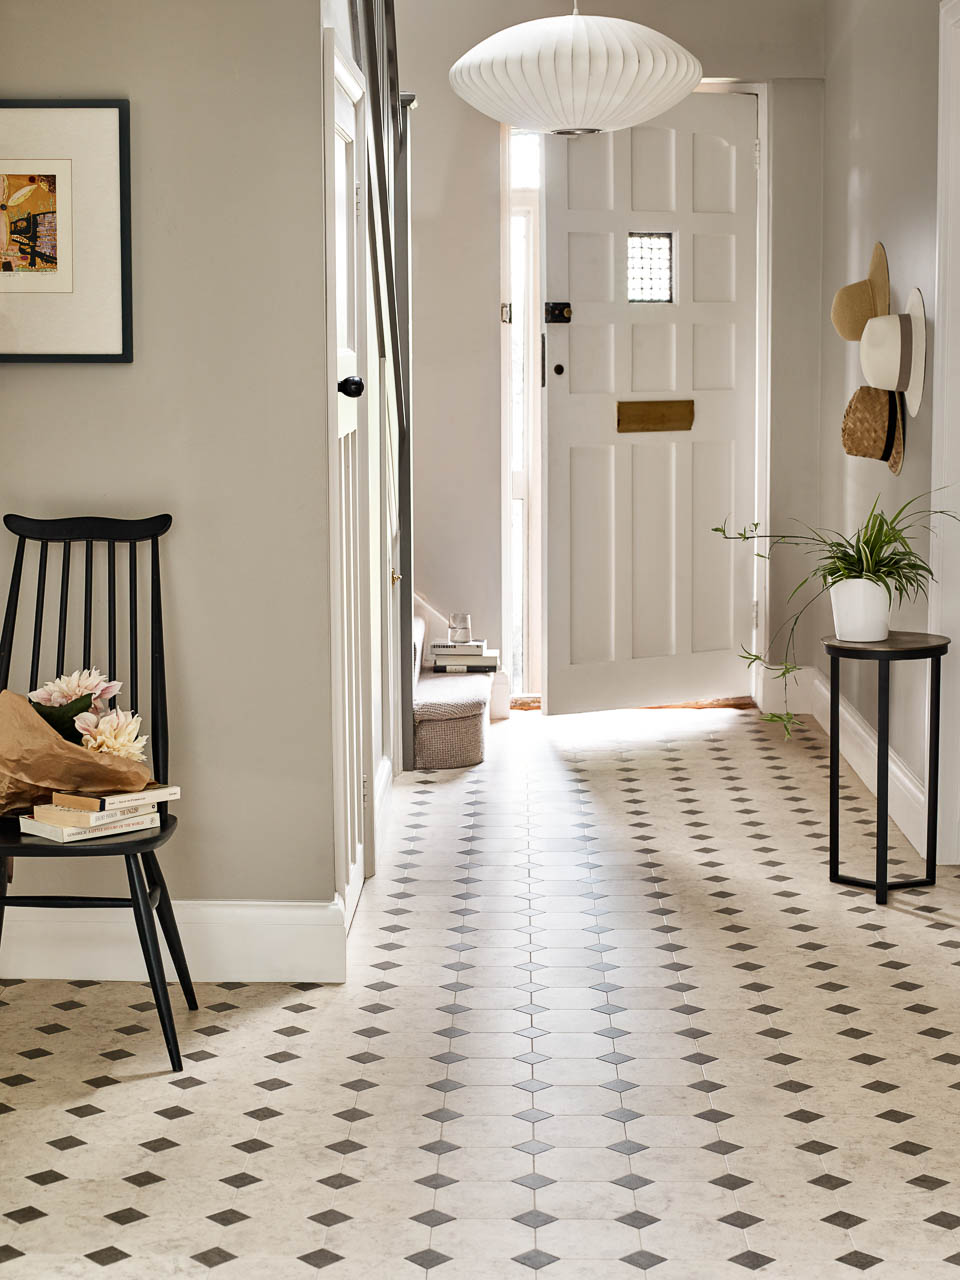 The Mirabelle A Beautiful Key Stone Design Floor In Amtico Signature Lvt For Your Home